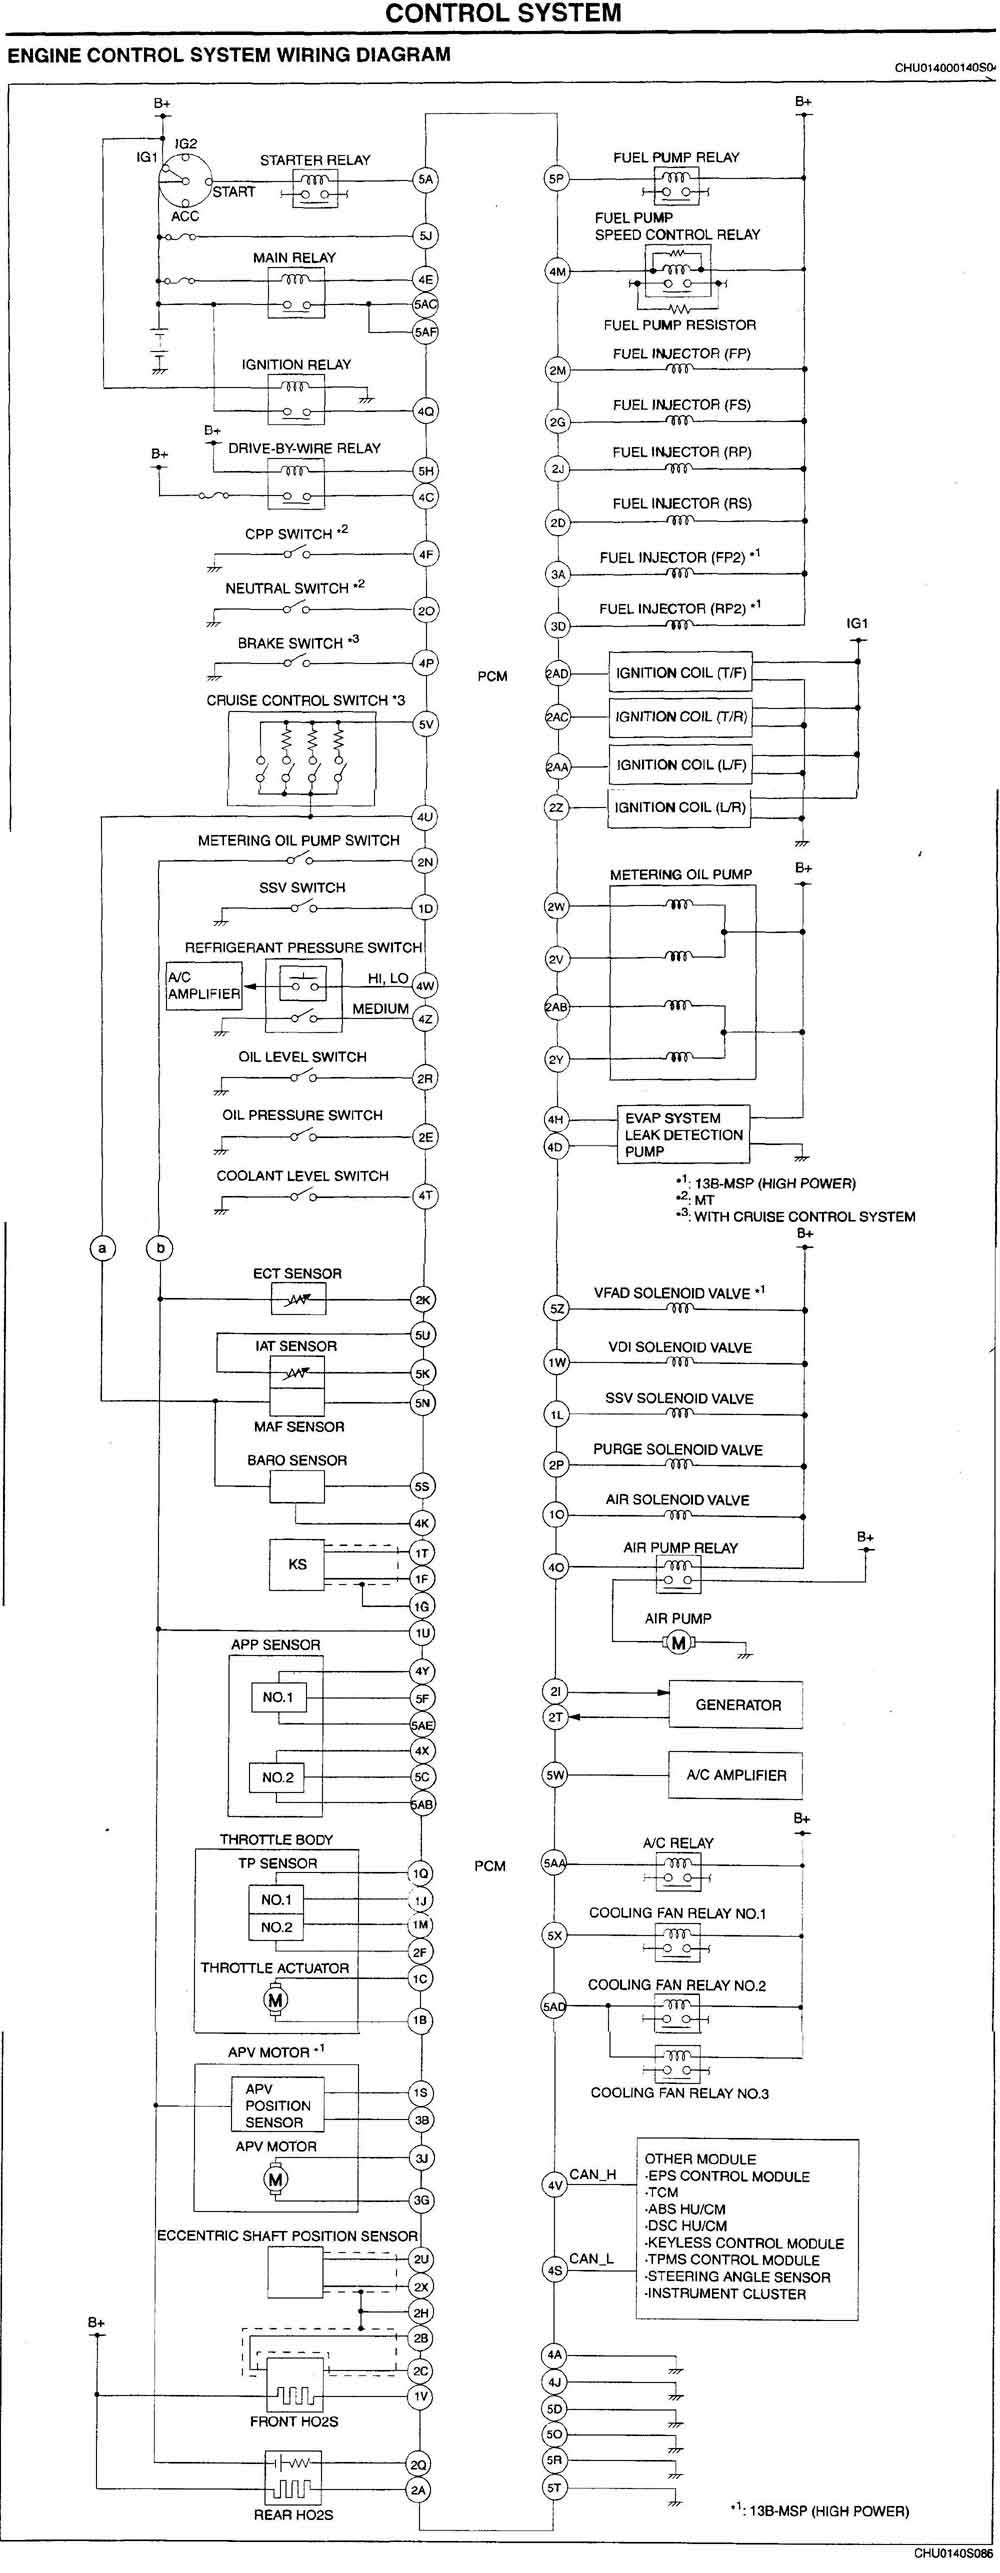 Rx8 Ecu Diagram, Rx8, Free Engine Image For User Manual